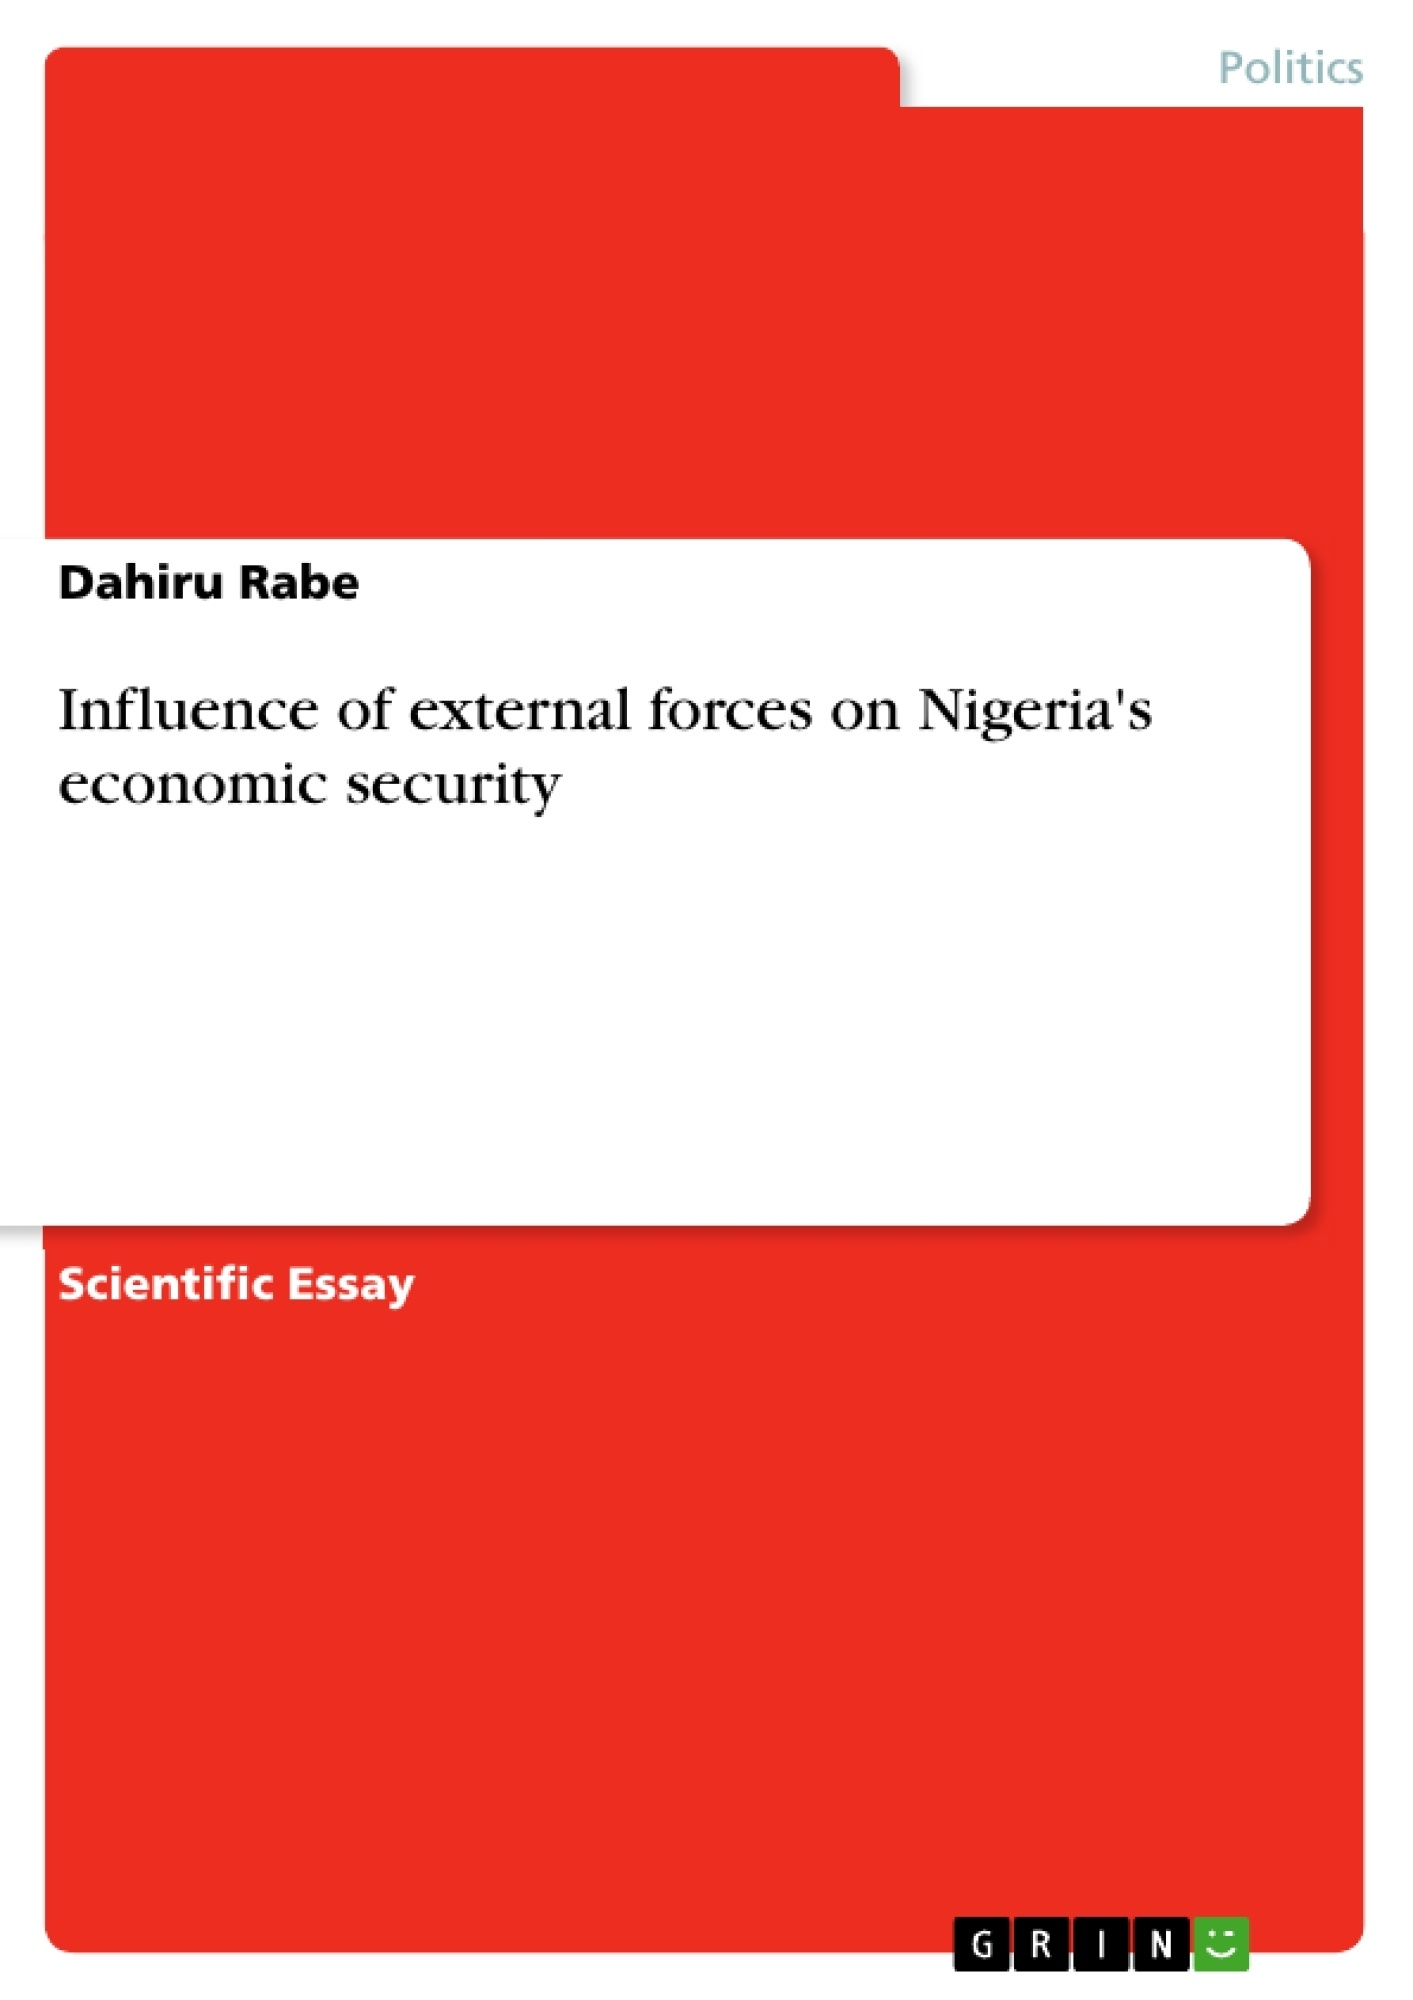 thesis on economic development in nigeria Industrial development and growth in nigeria: the industrial sector accounts for 6 per cent of economic activity industrial development in nigeria in a.